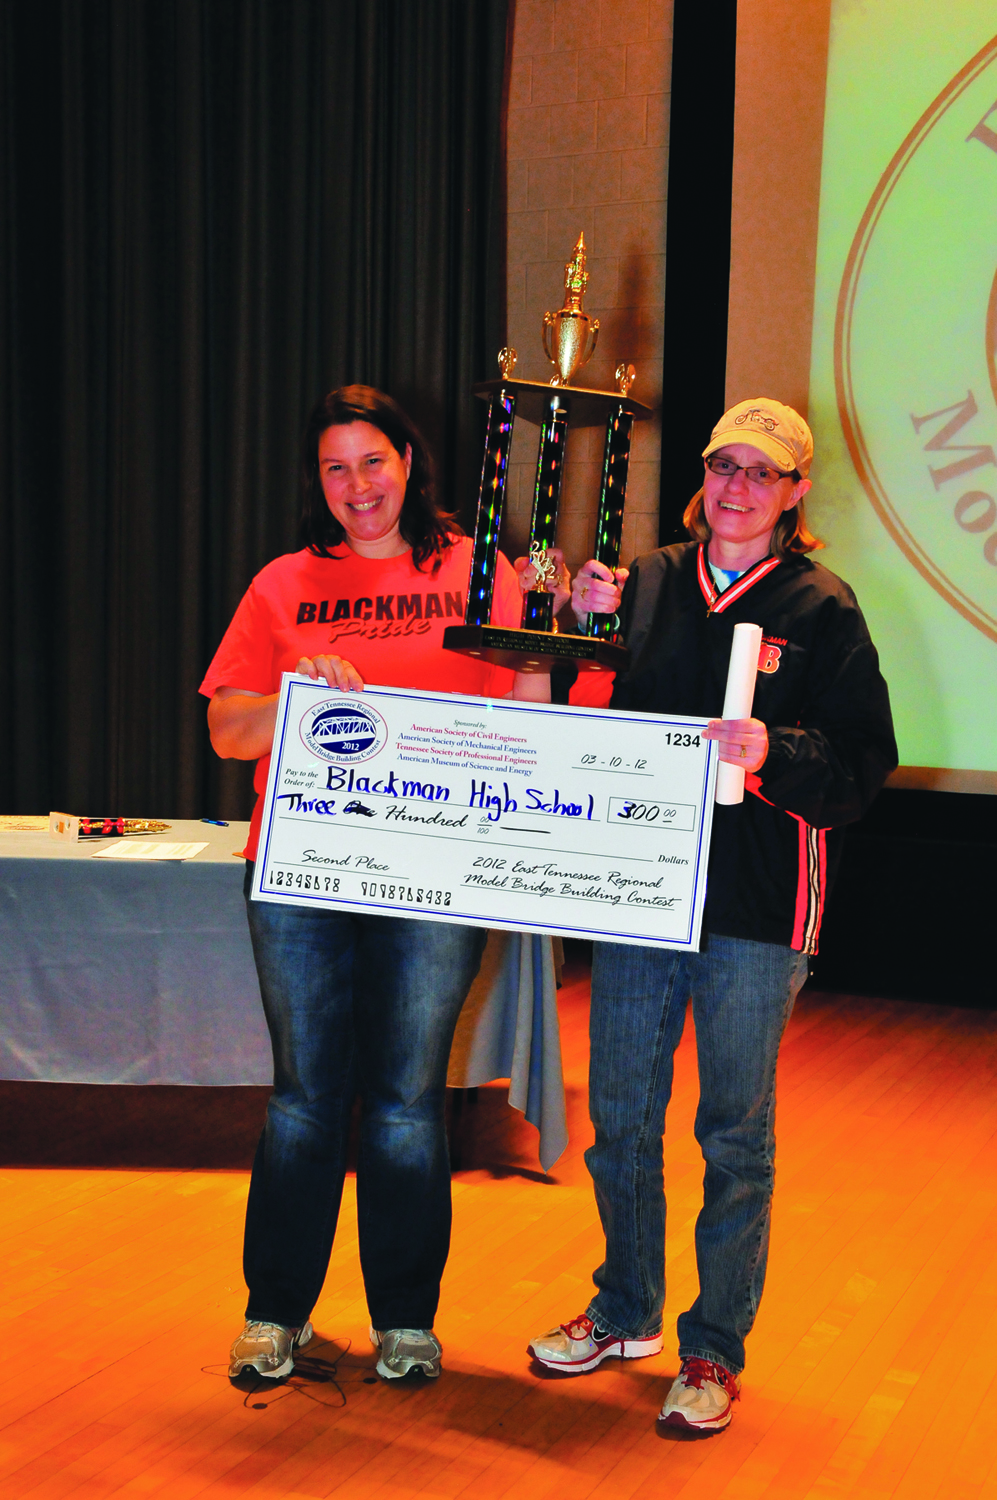 Blackman High School teachers Gail Dawson and Nicole Harvey raise the High Point trophy awarded for the most bridges entered with the highest structural efficiency ratio from one school during the East Tennessee Model Bridge Buillding Contest. Additionally, Blackman High received $300, as the result of their students' bridge building proficiency.